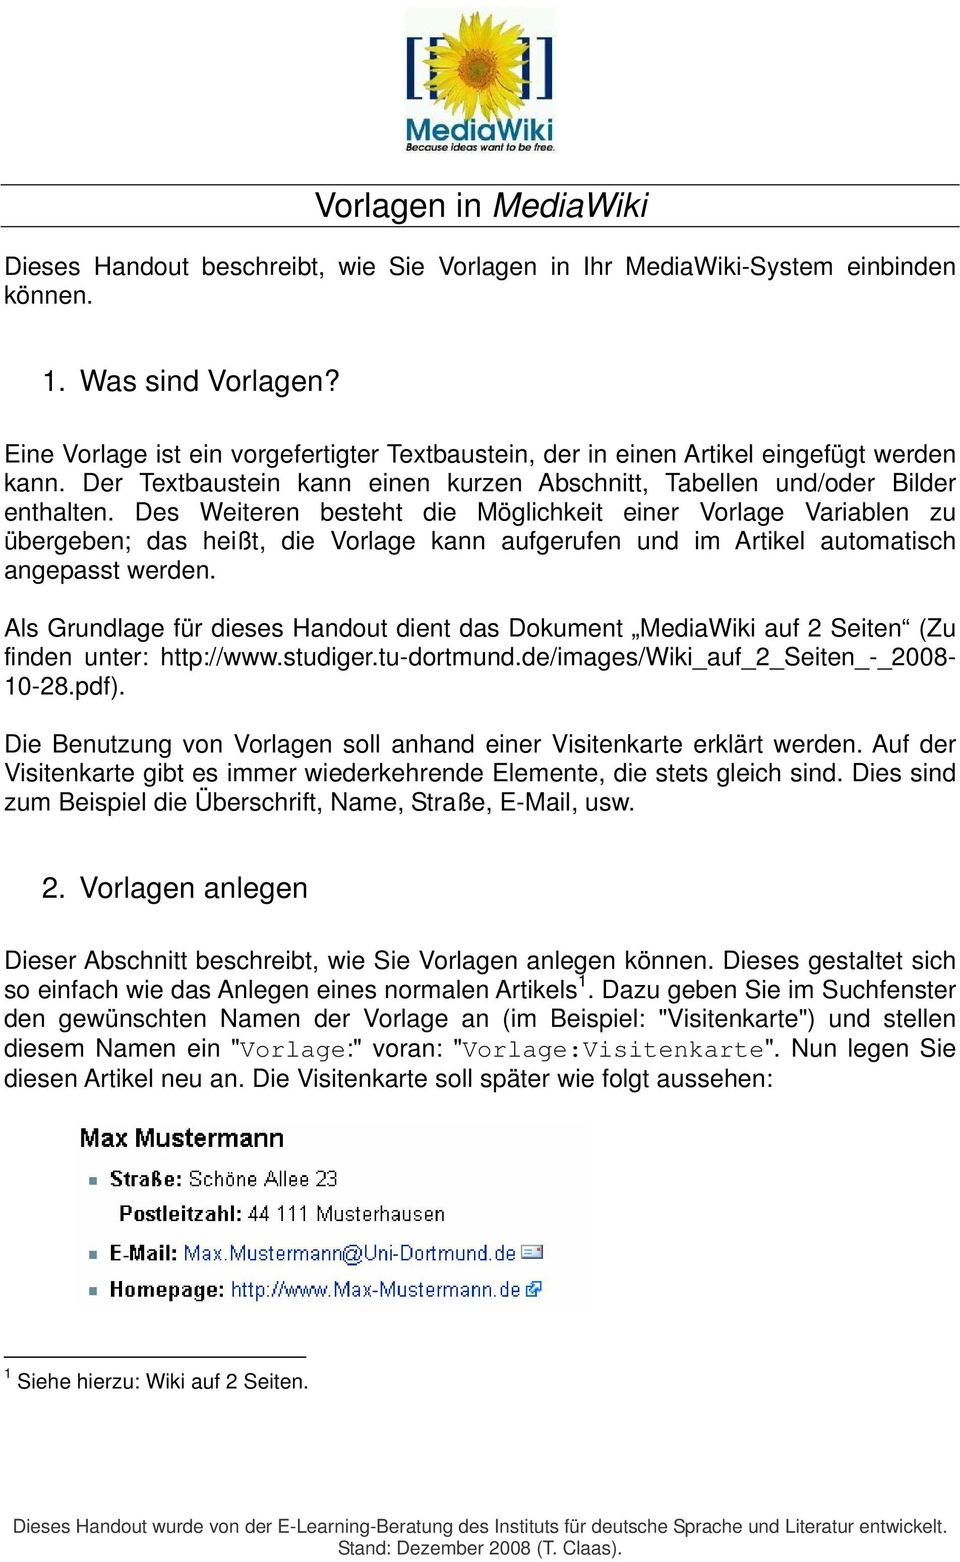 Vorlagen In Mediawiki Pdf Free Download